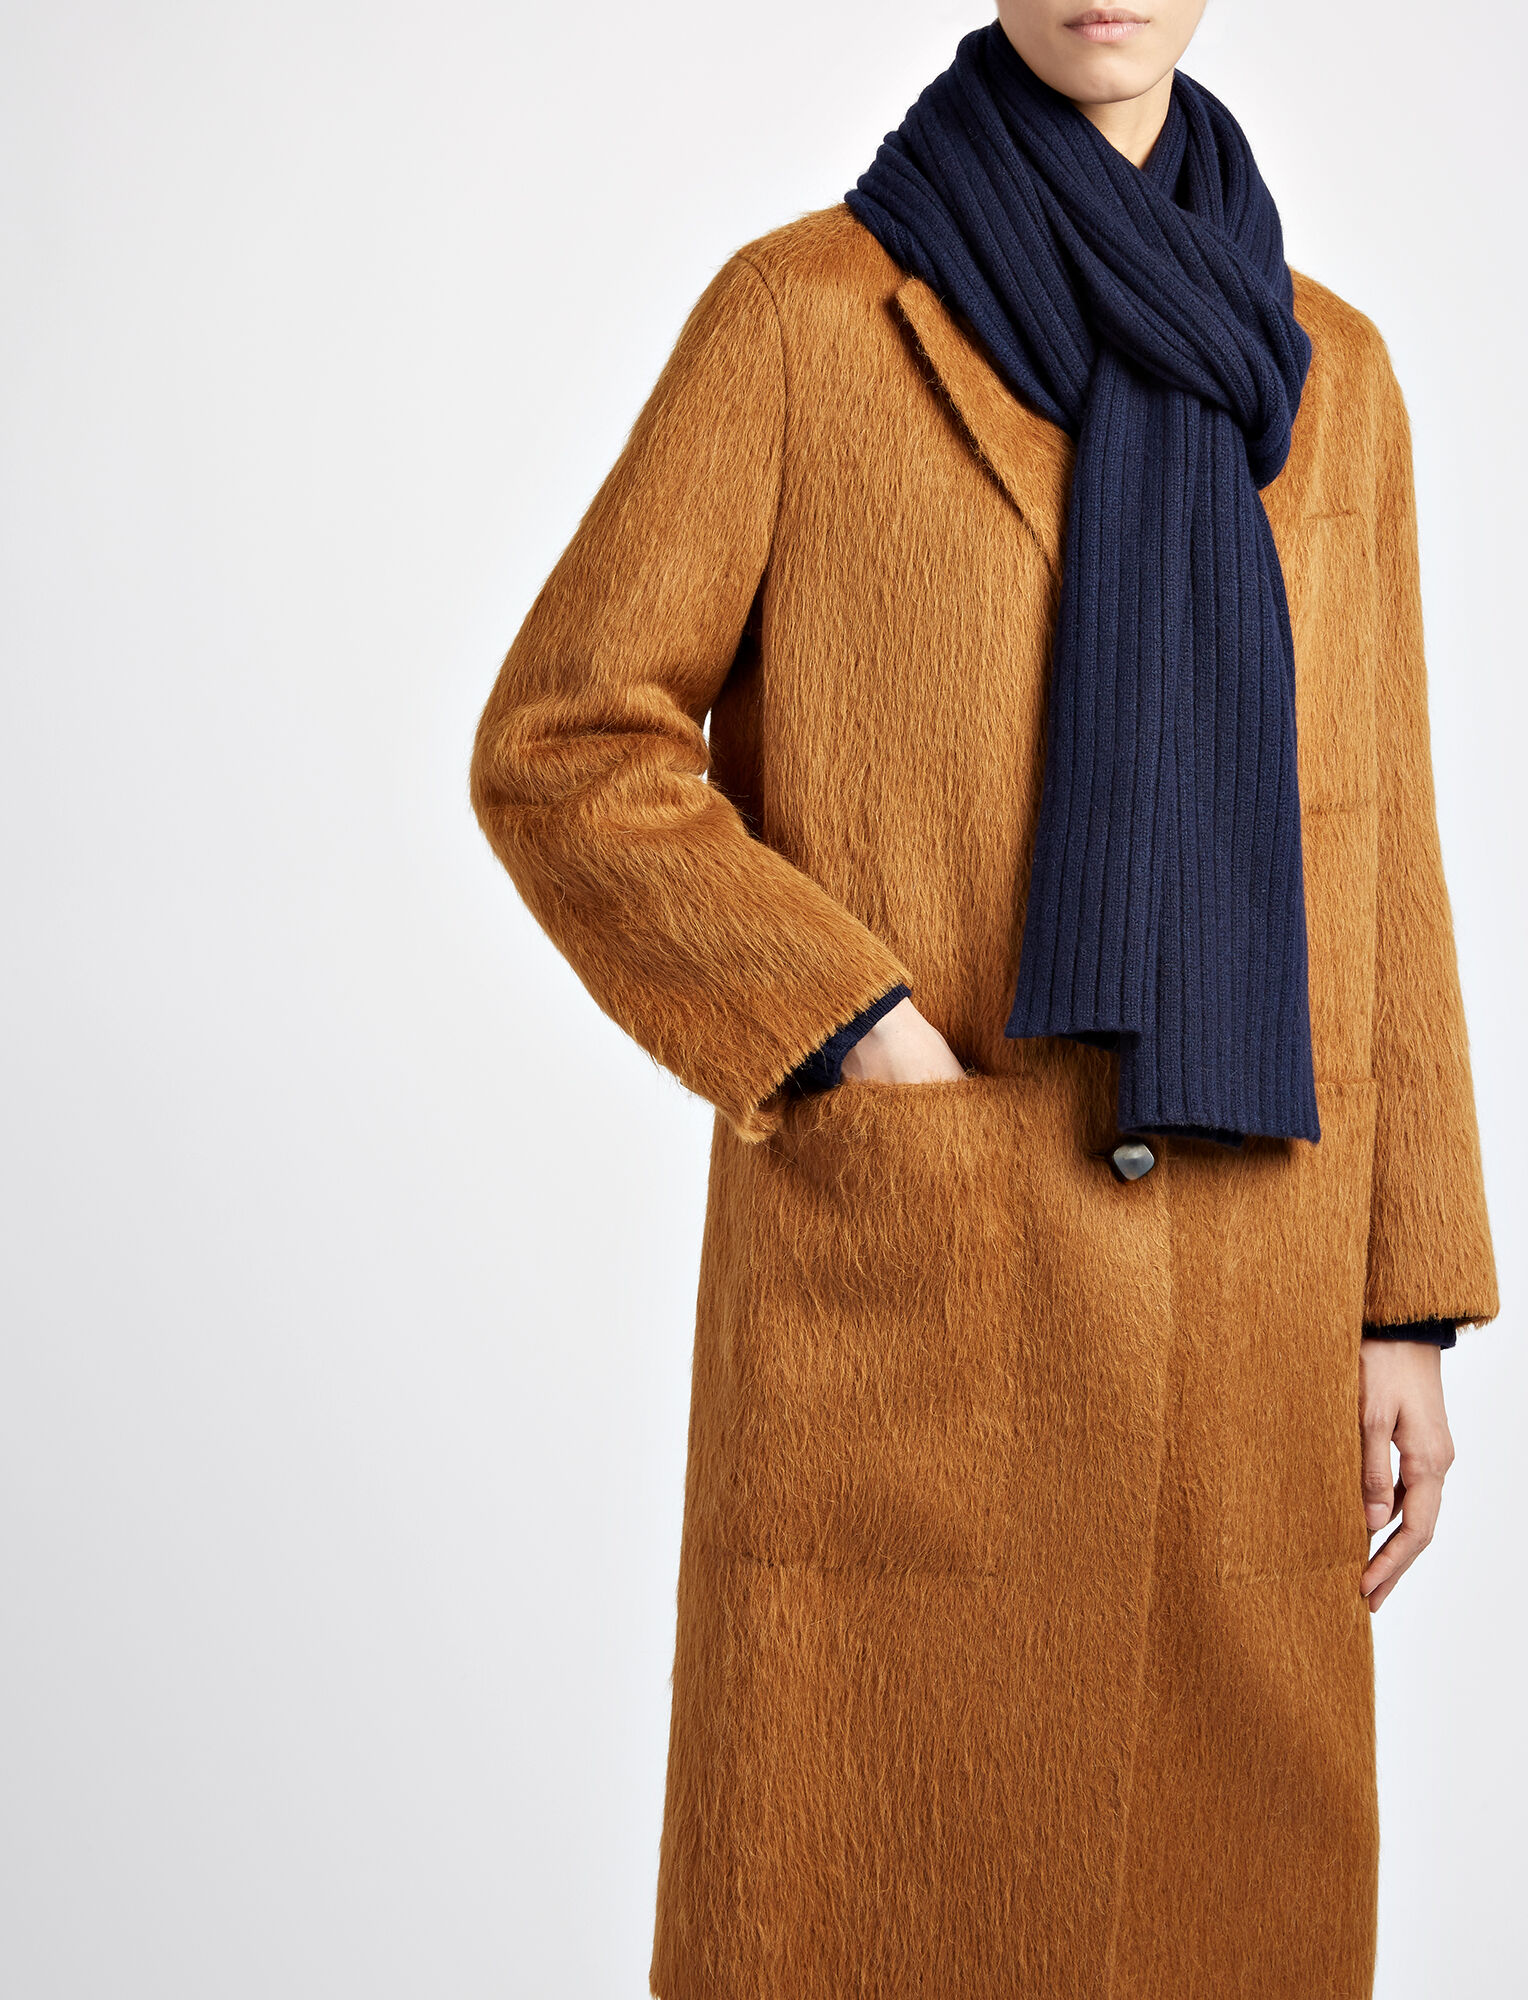 Joseph, Cashmere Luxe Rib Scarf, in NAVY